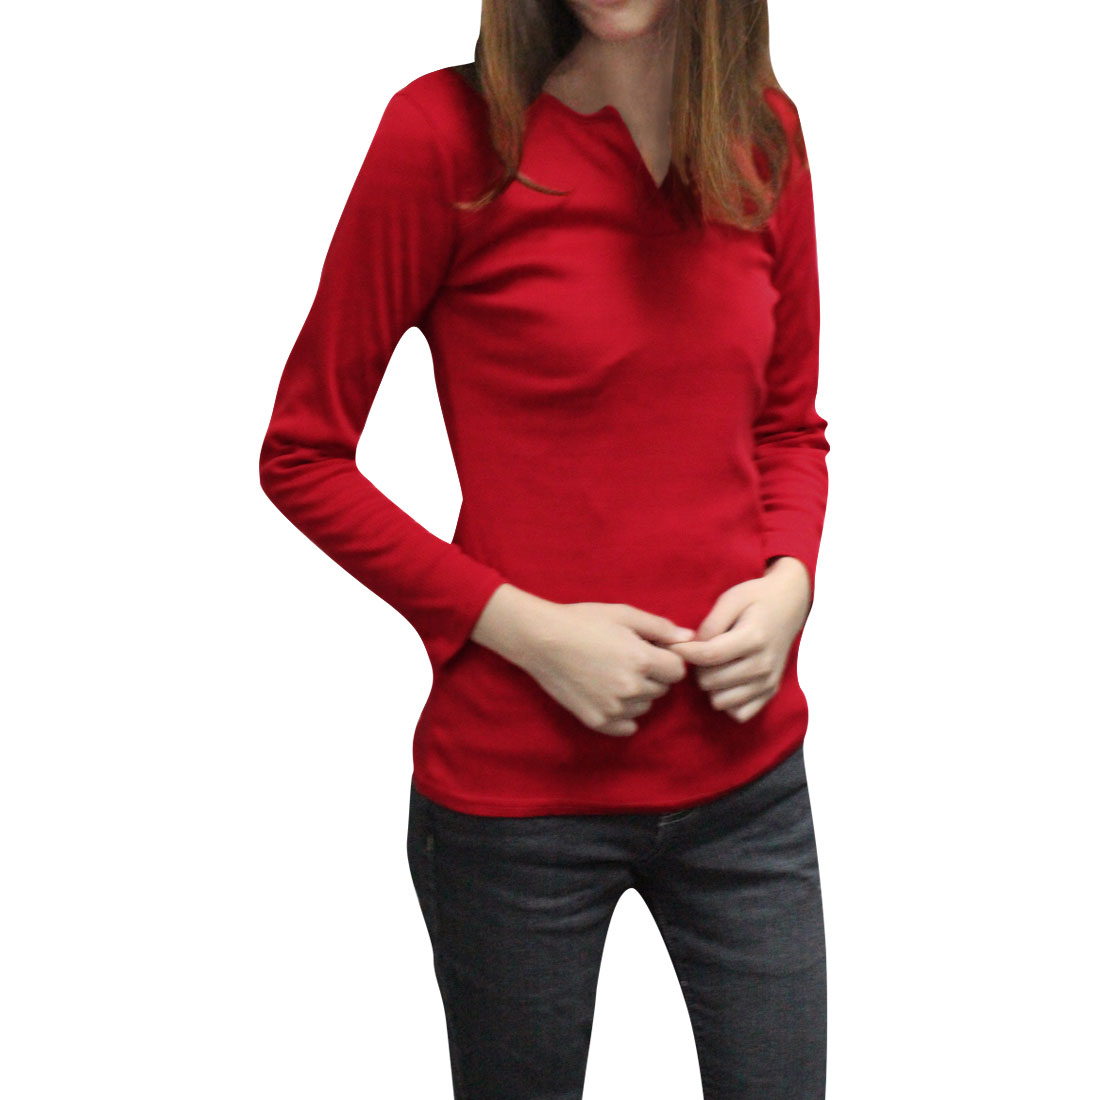 Allegra K Juniors Long Sleeves Stretchy Casual Autumn Bottoming Shirt (Size S / 3)